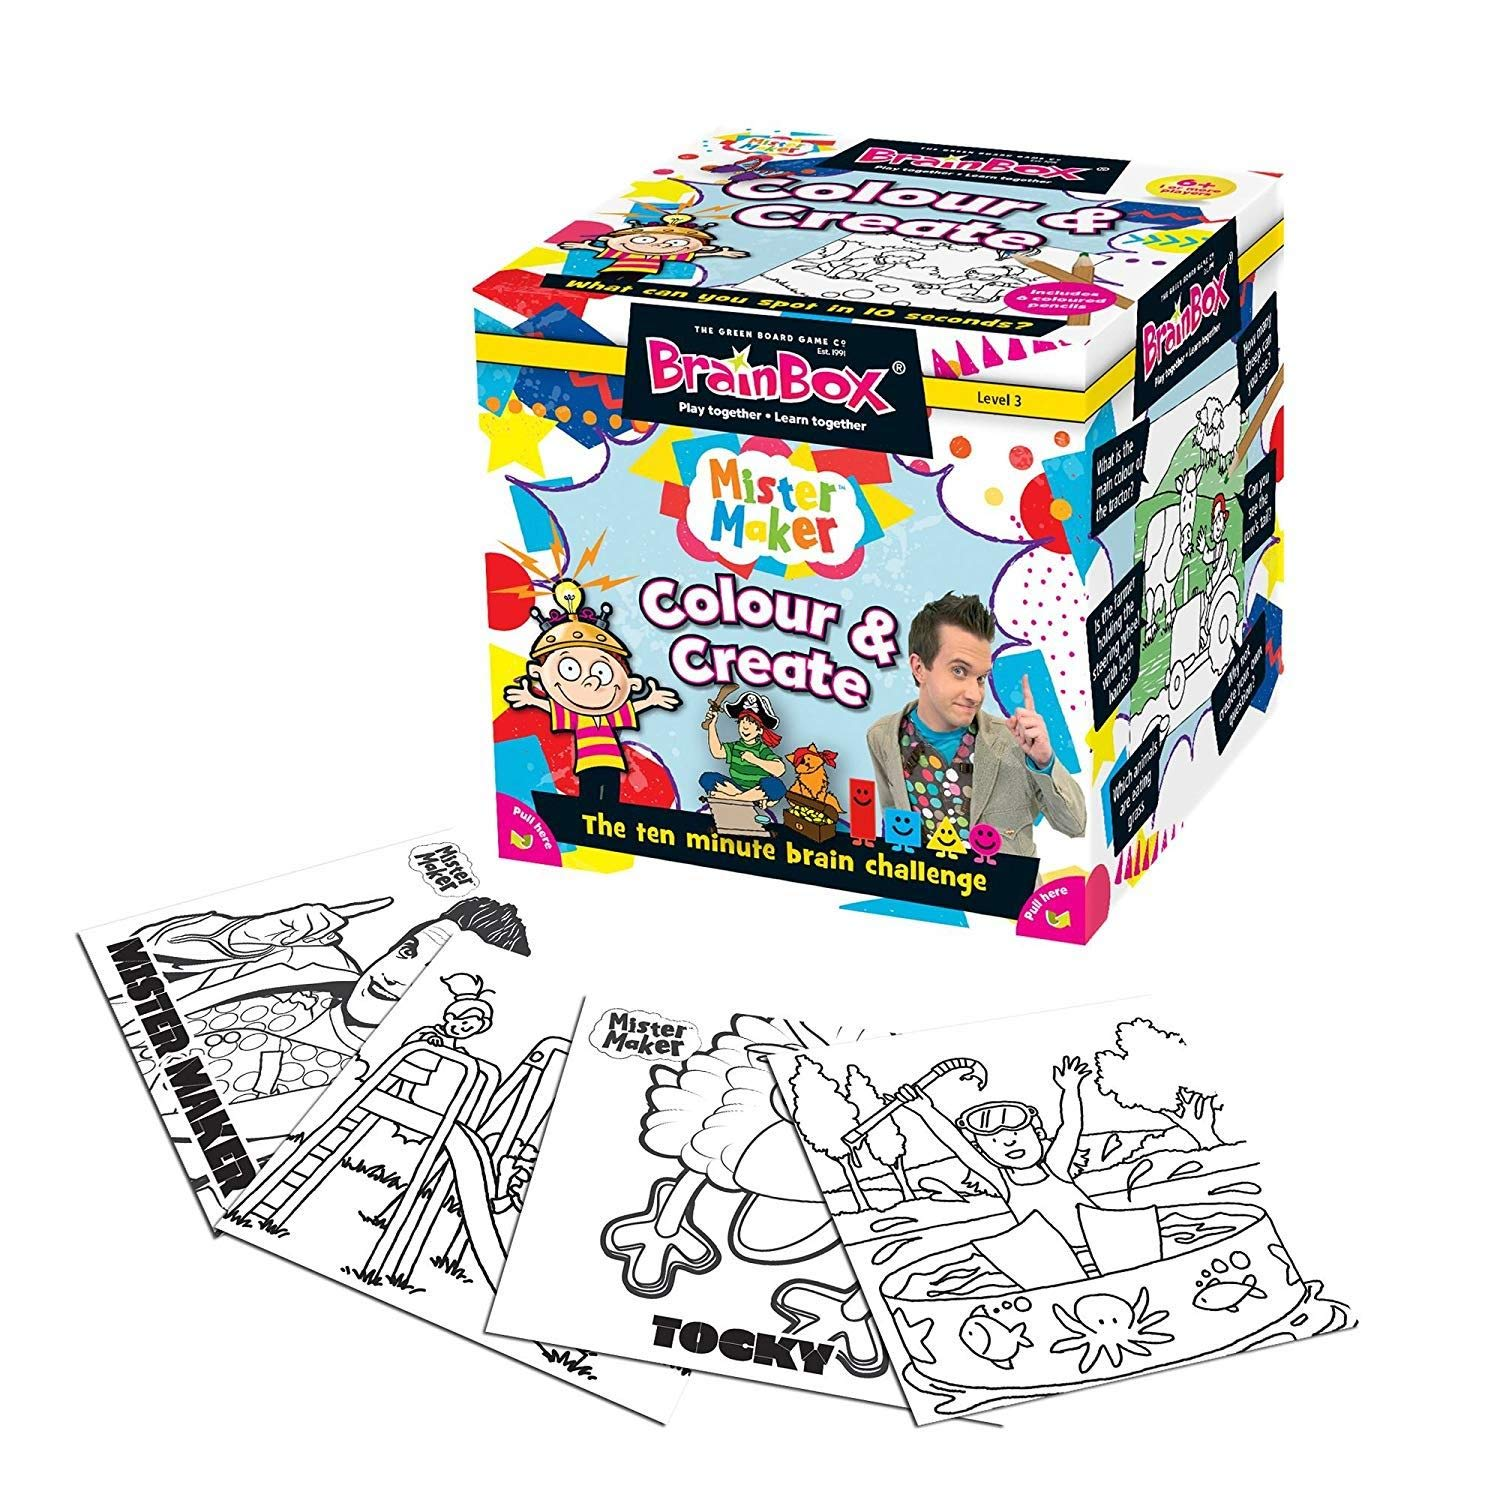 BrainBox - Mister Maker Colour and Create Memory Game by The verde Board Game Co.